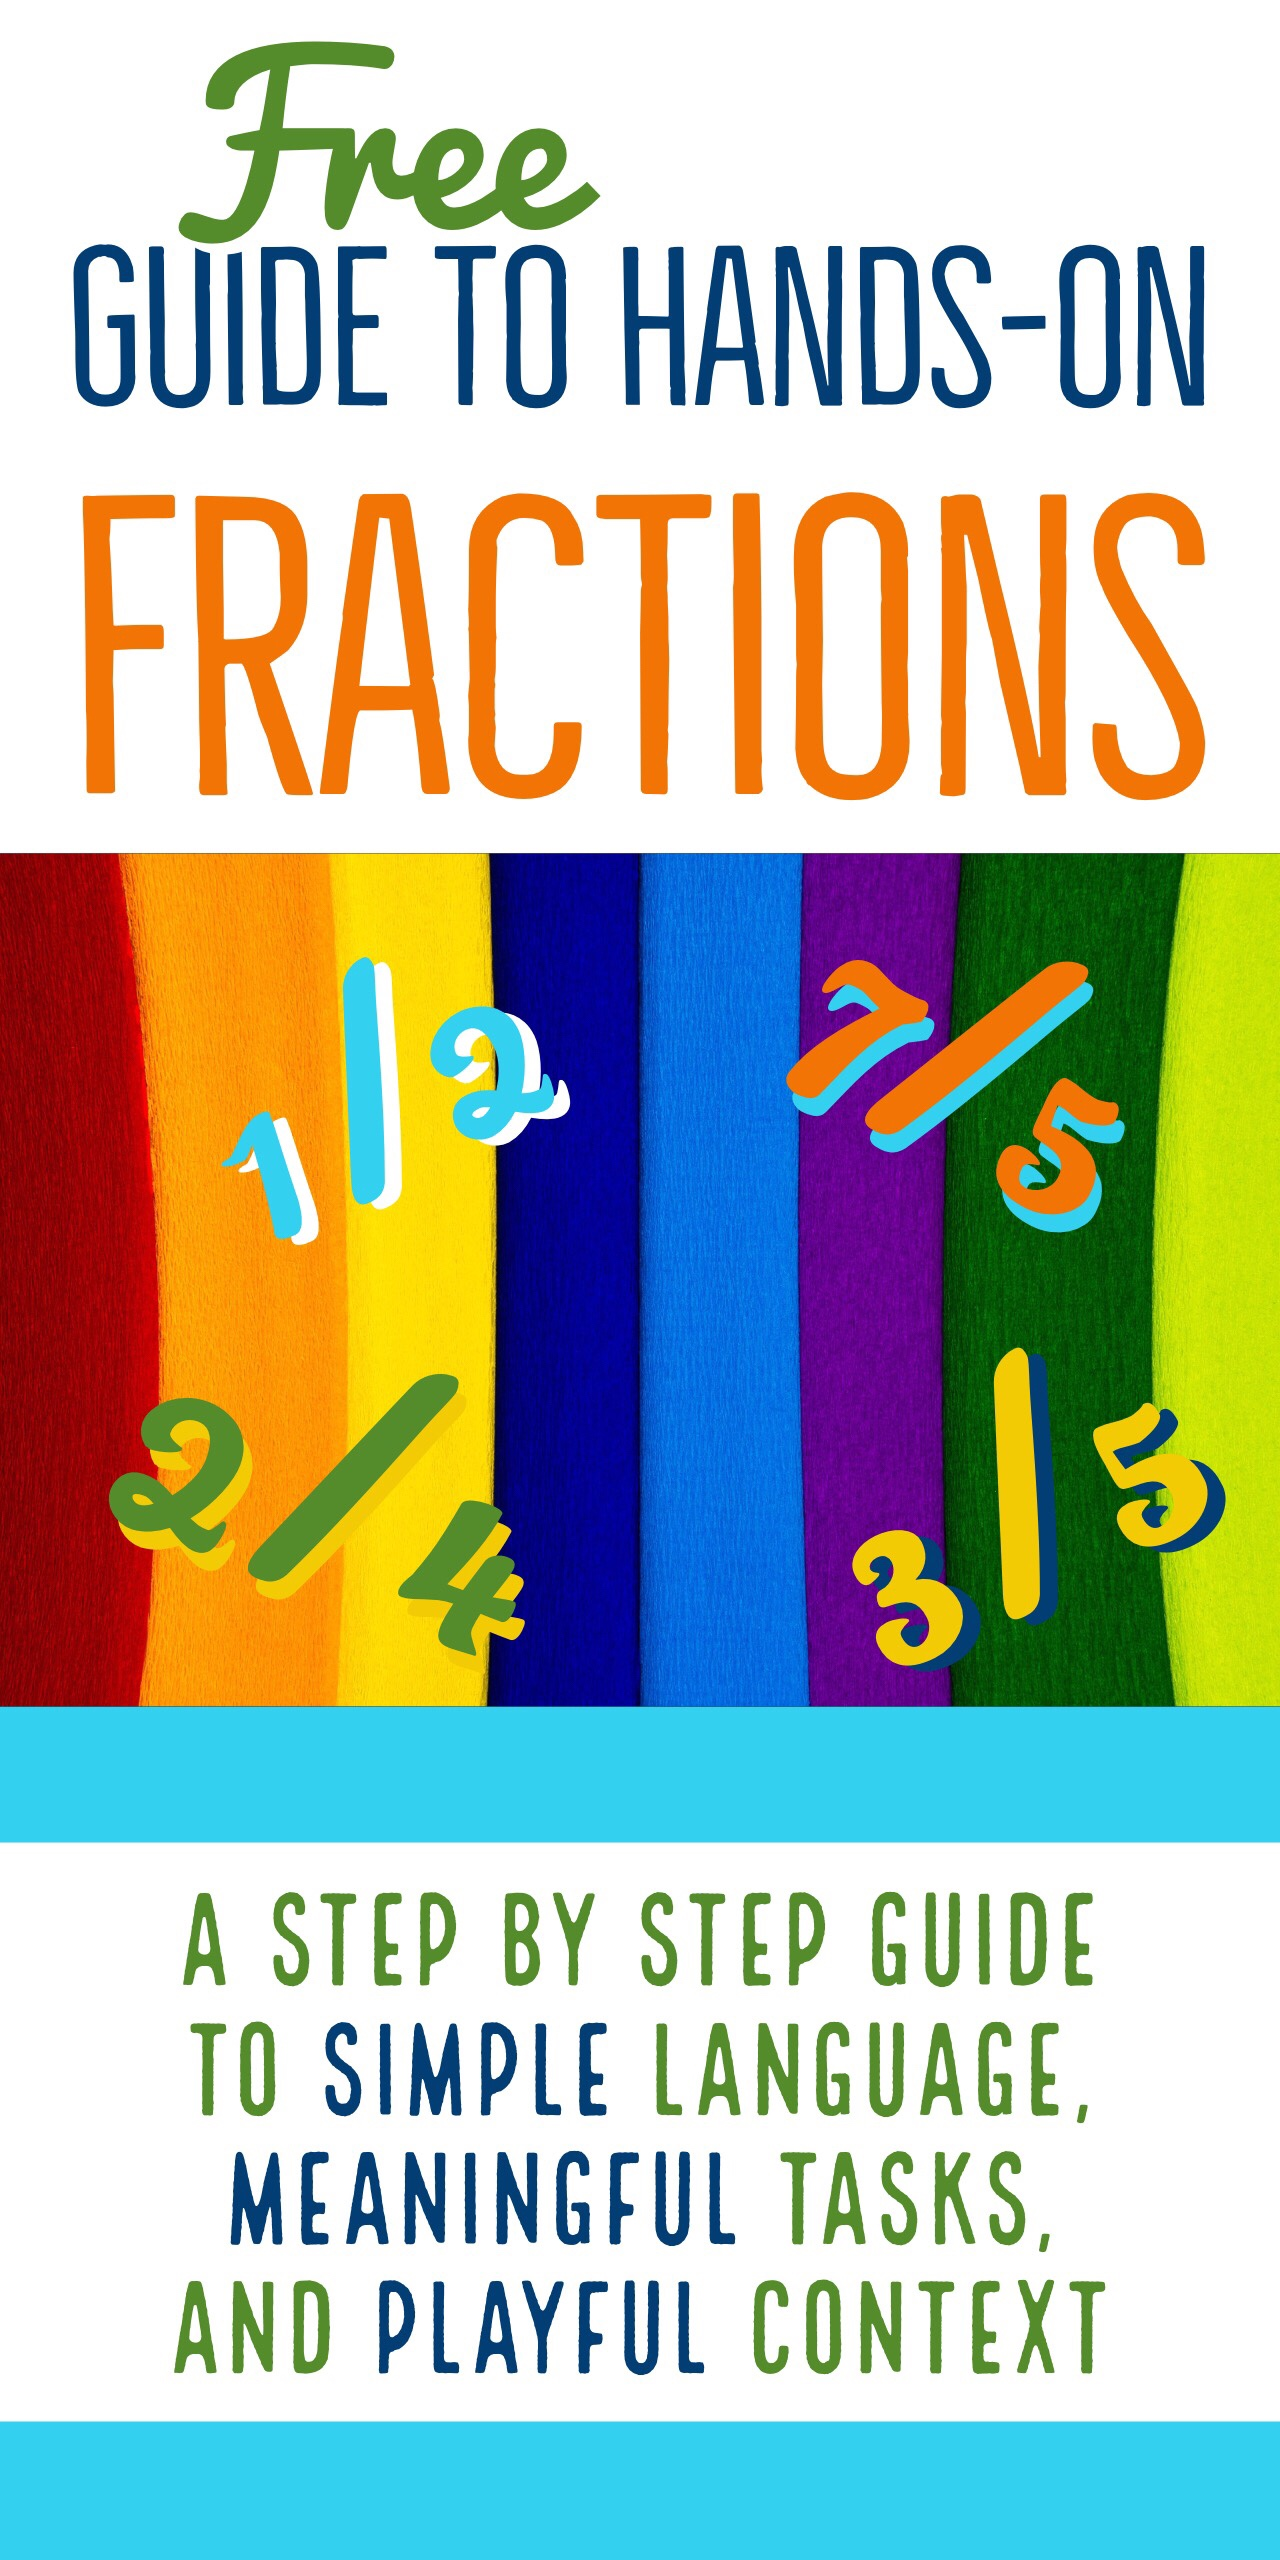 Teaching Fractions with Cuisenaire rods begins with naming fractions.   But we don't want to just learn fraction names.   We also want to students to gain a conceptual understanding of fractions.   With the help of Cuisenaire Rods, Gattegno and fun activities, students can find naming and understanding fractions an enjoyable journey.